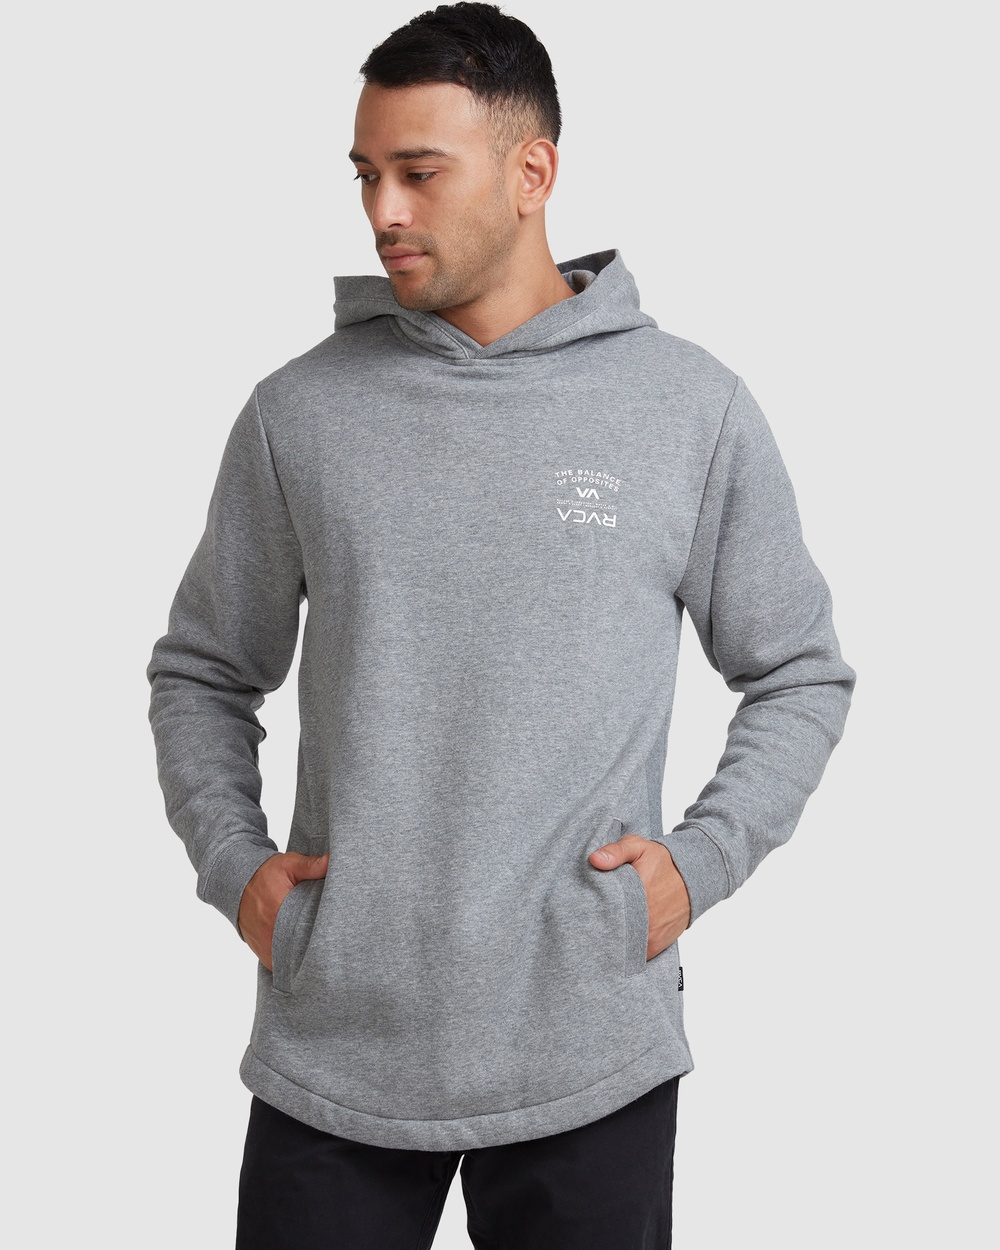 RVCA Bend It Like Rvca Pullover Jumpers & Cardigans GREY MARLE Australia